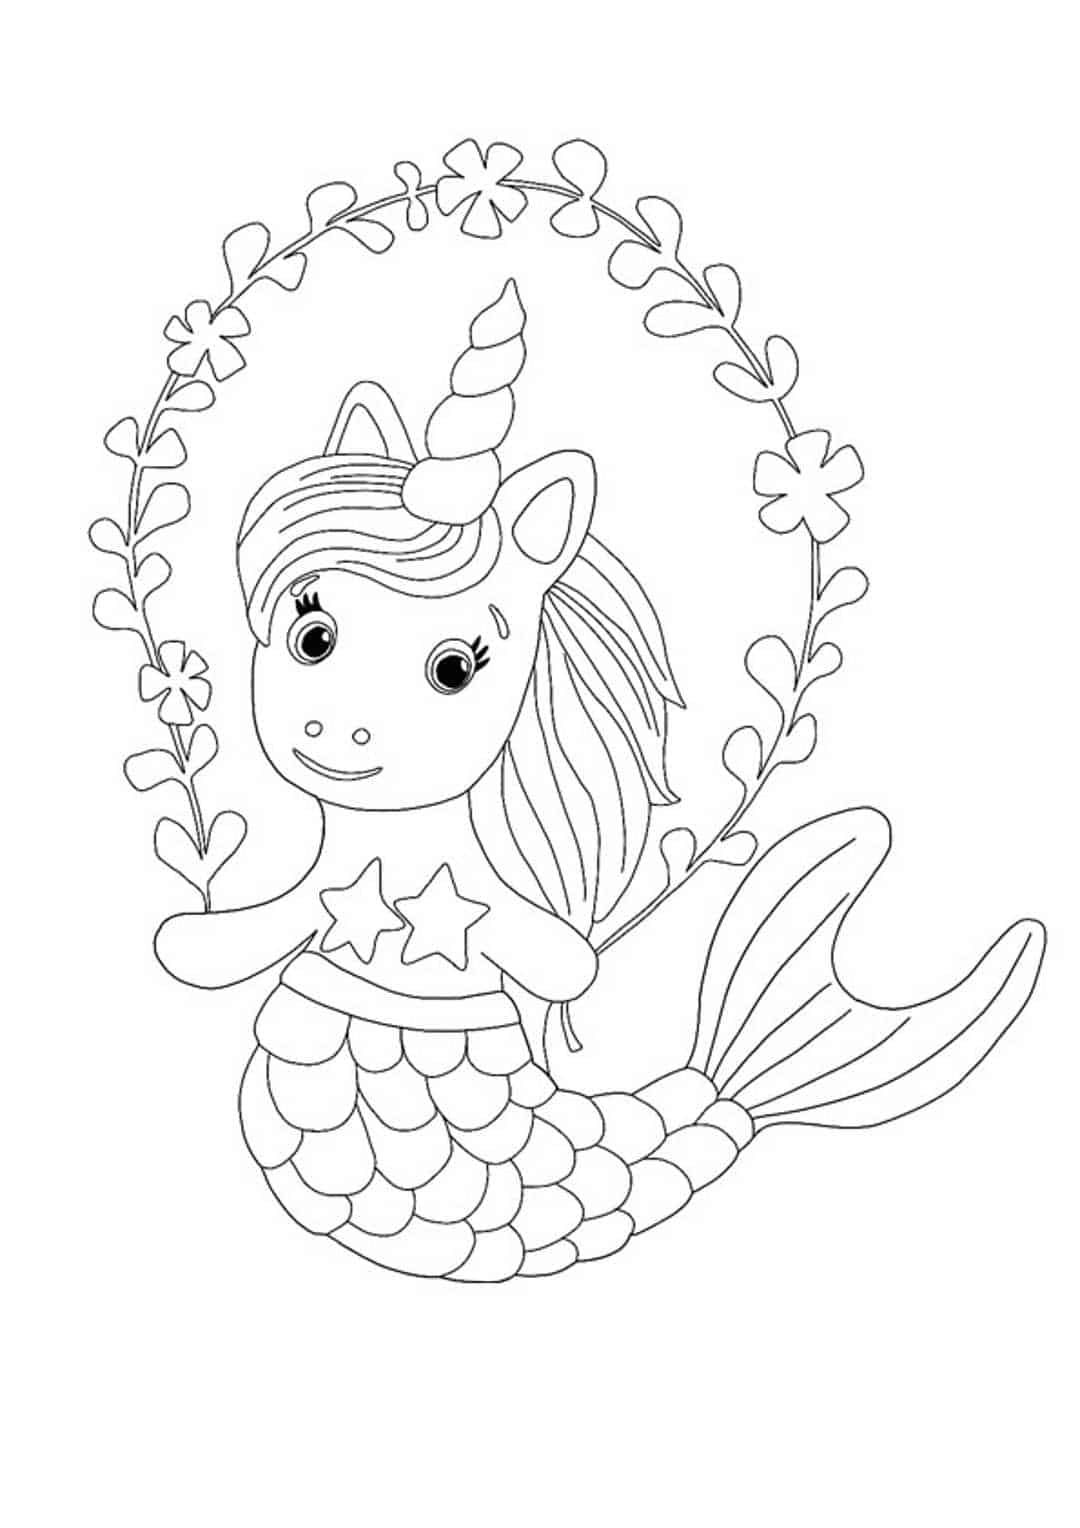 Unicorn Mermaid Coloring Pages 6 Free Printable Coloring Pages 2020 In 2021 Unicorn Coloring Pages Mermaid Coloring Pages Coloring Pages